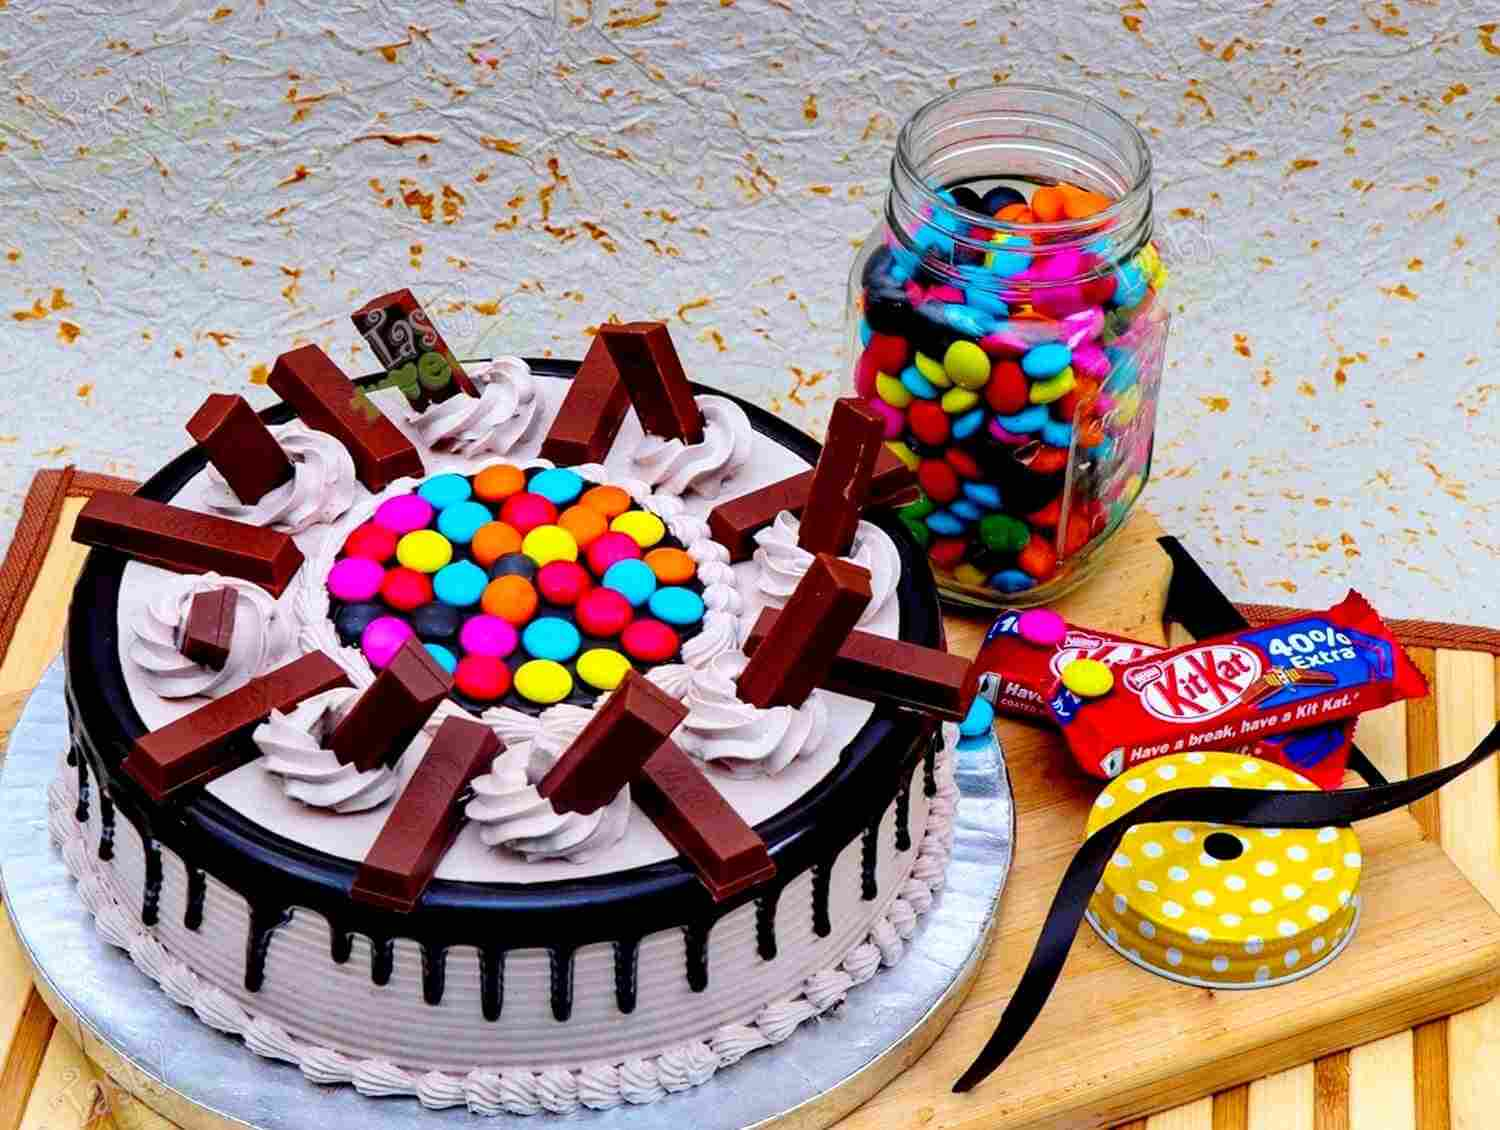 Pleasing Order Cakes Online In Gurgaon Cake Order In Gurgaon Funny Birthday Cards Online Inifodamsfinfo